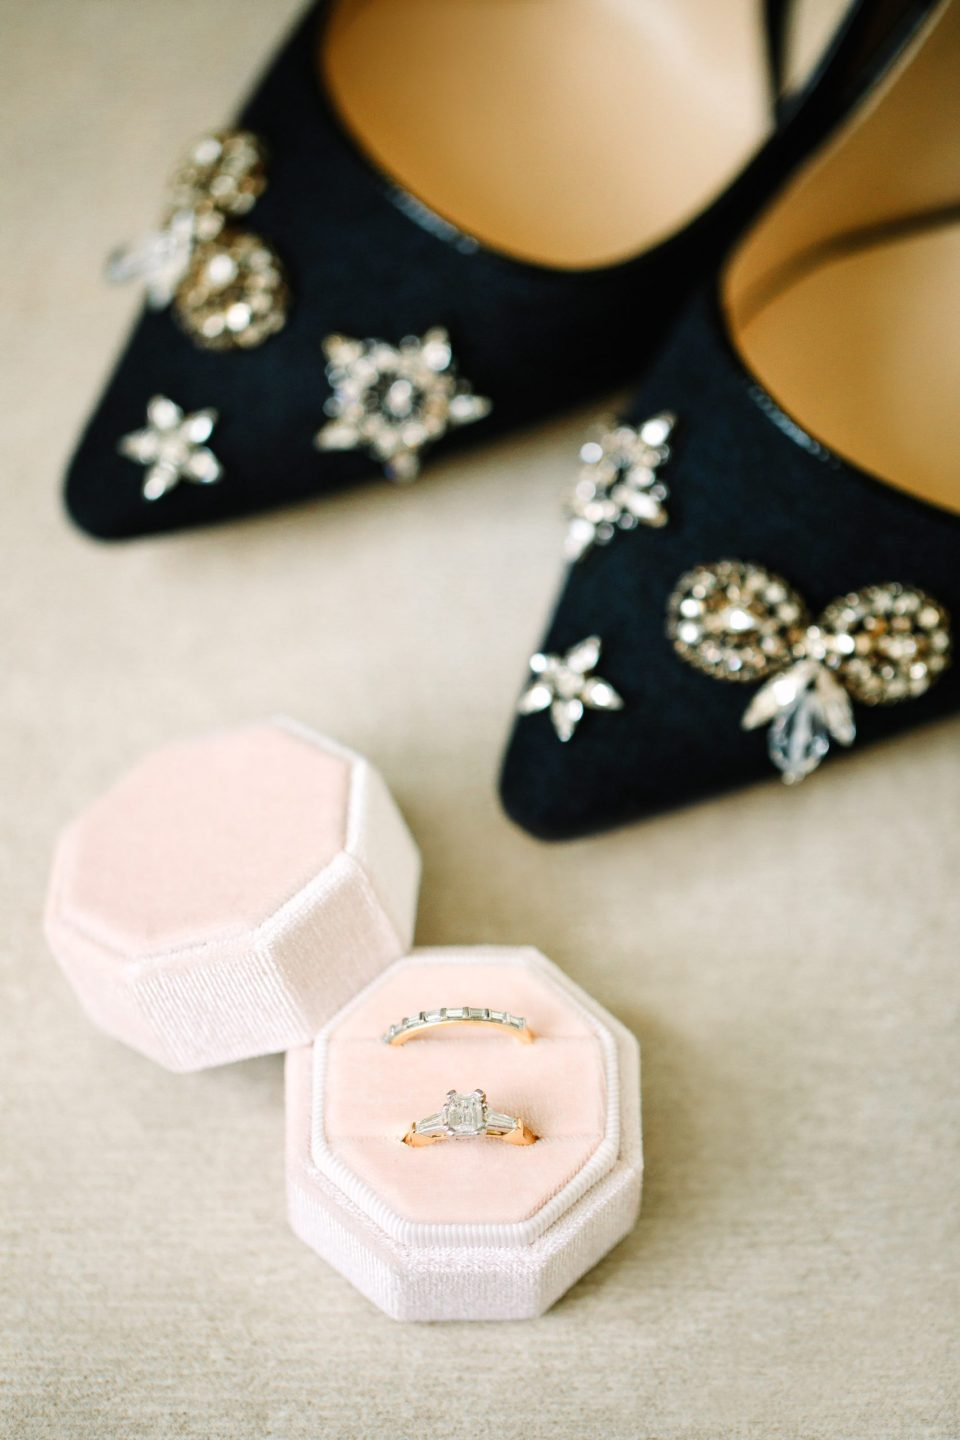 Wedding rings and Jimmy Choo heels